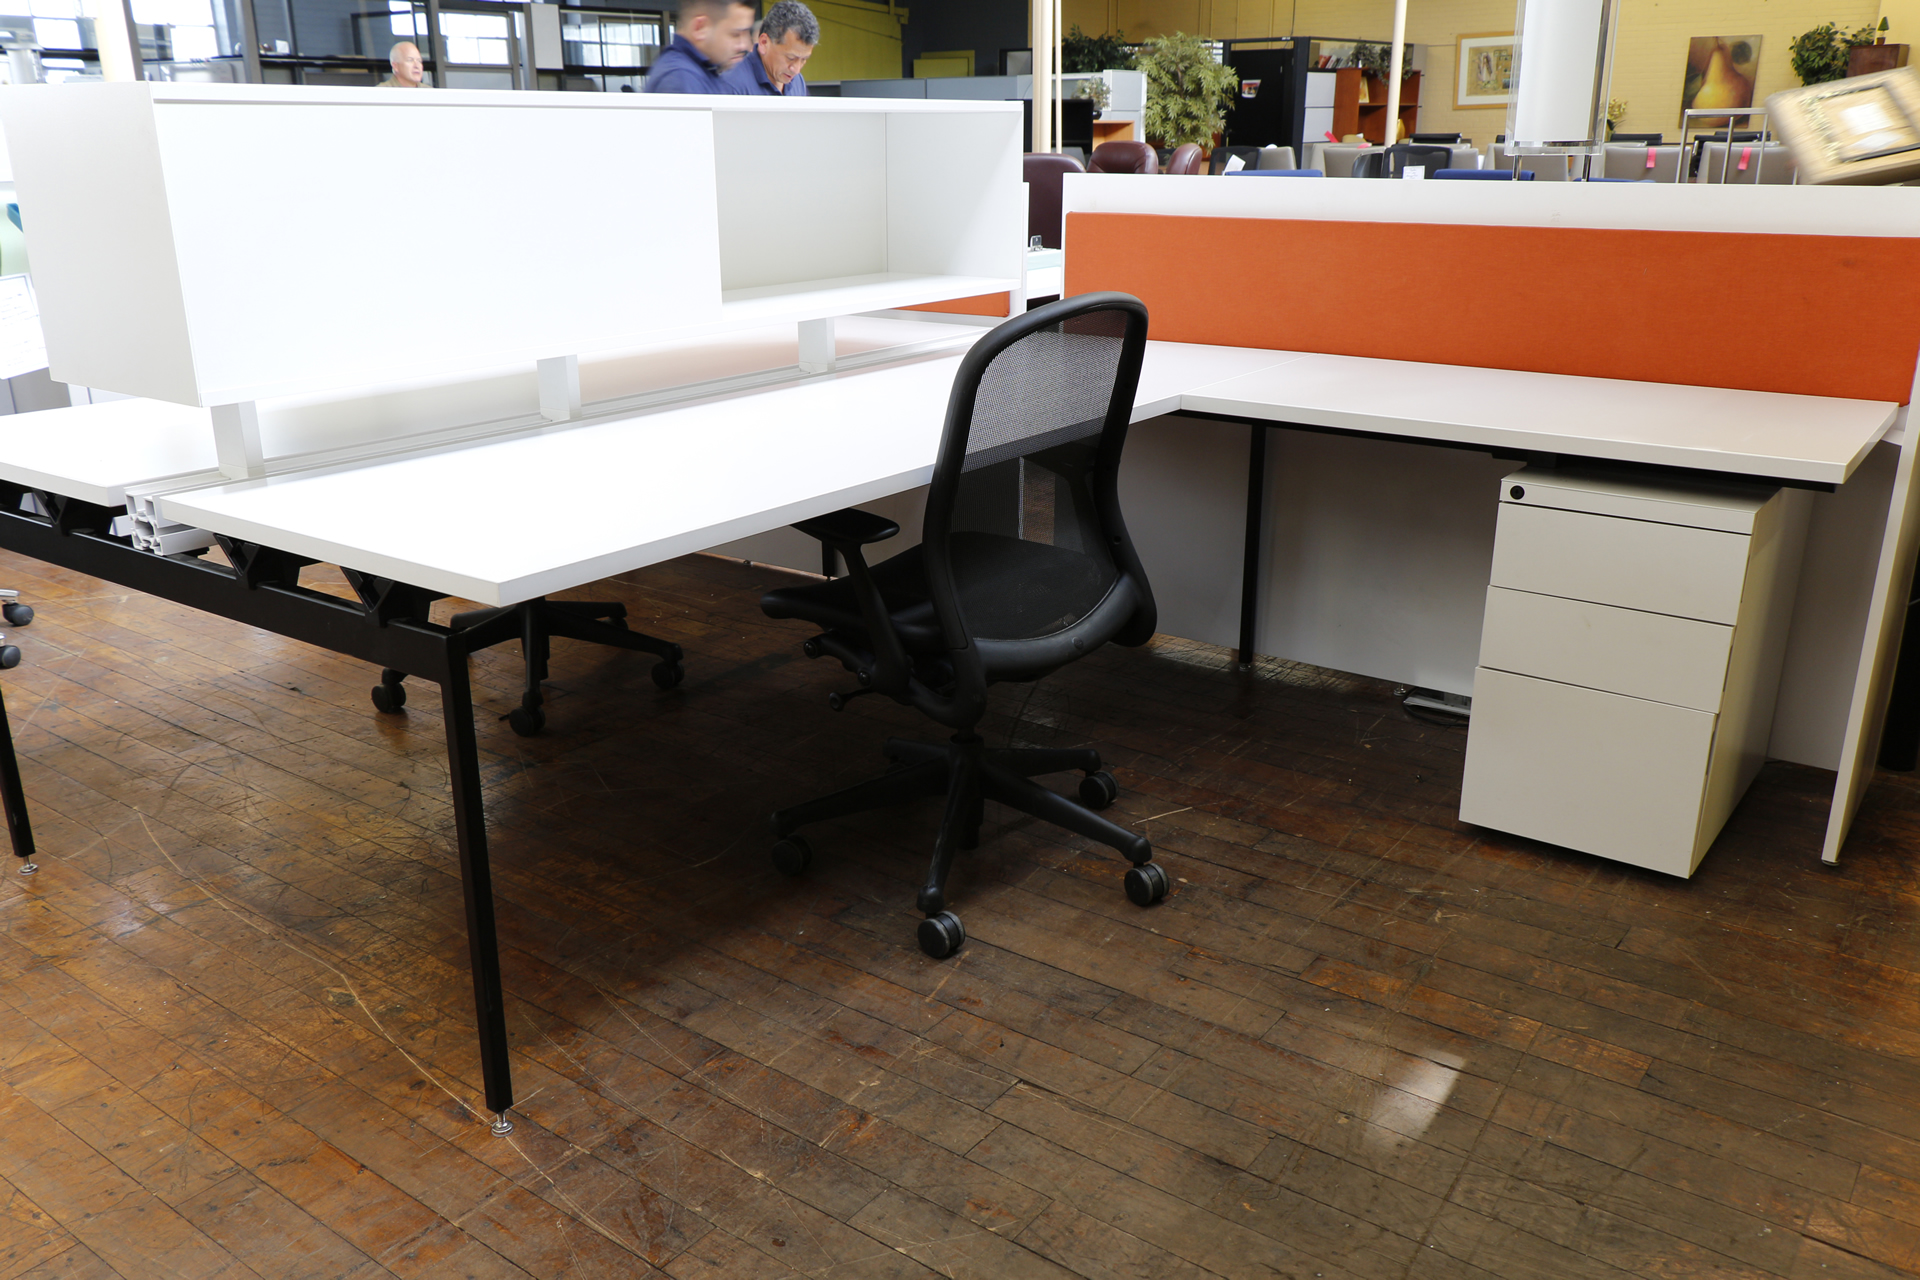 peartreeofficefurniture_peartreeofficefurniture_mg_4133.jpg